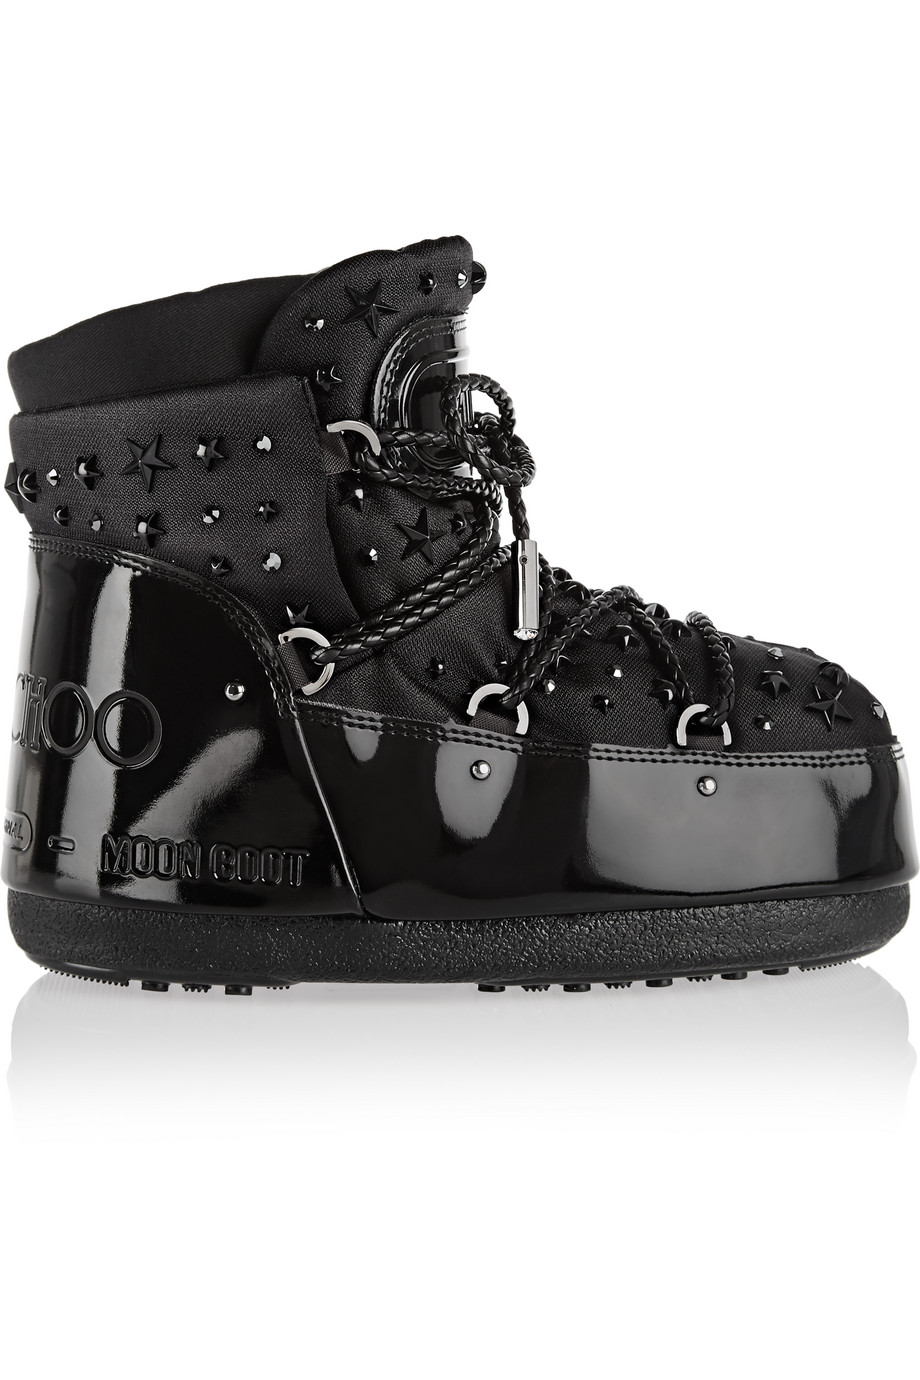 Moon Boot + Jimmy Choo MB Buzz Embellished Faux Patent-Leather and Shell Snow Boots, Black, Women's, Size: 37/38